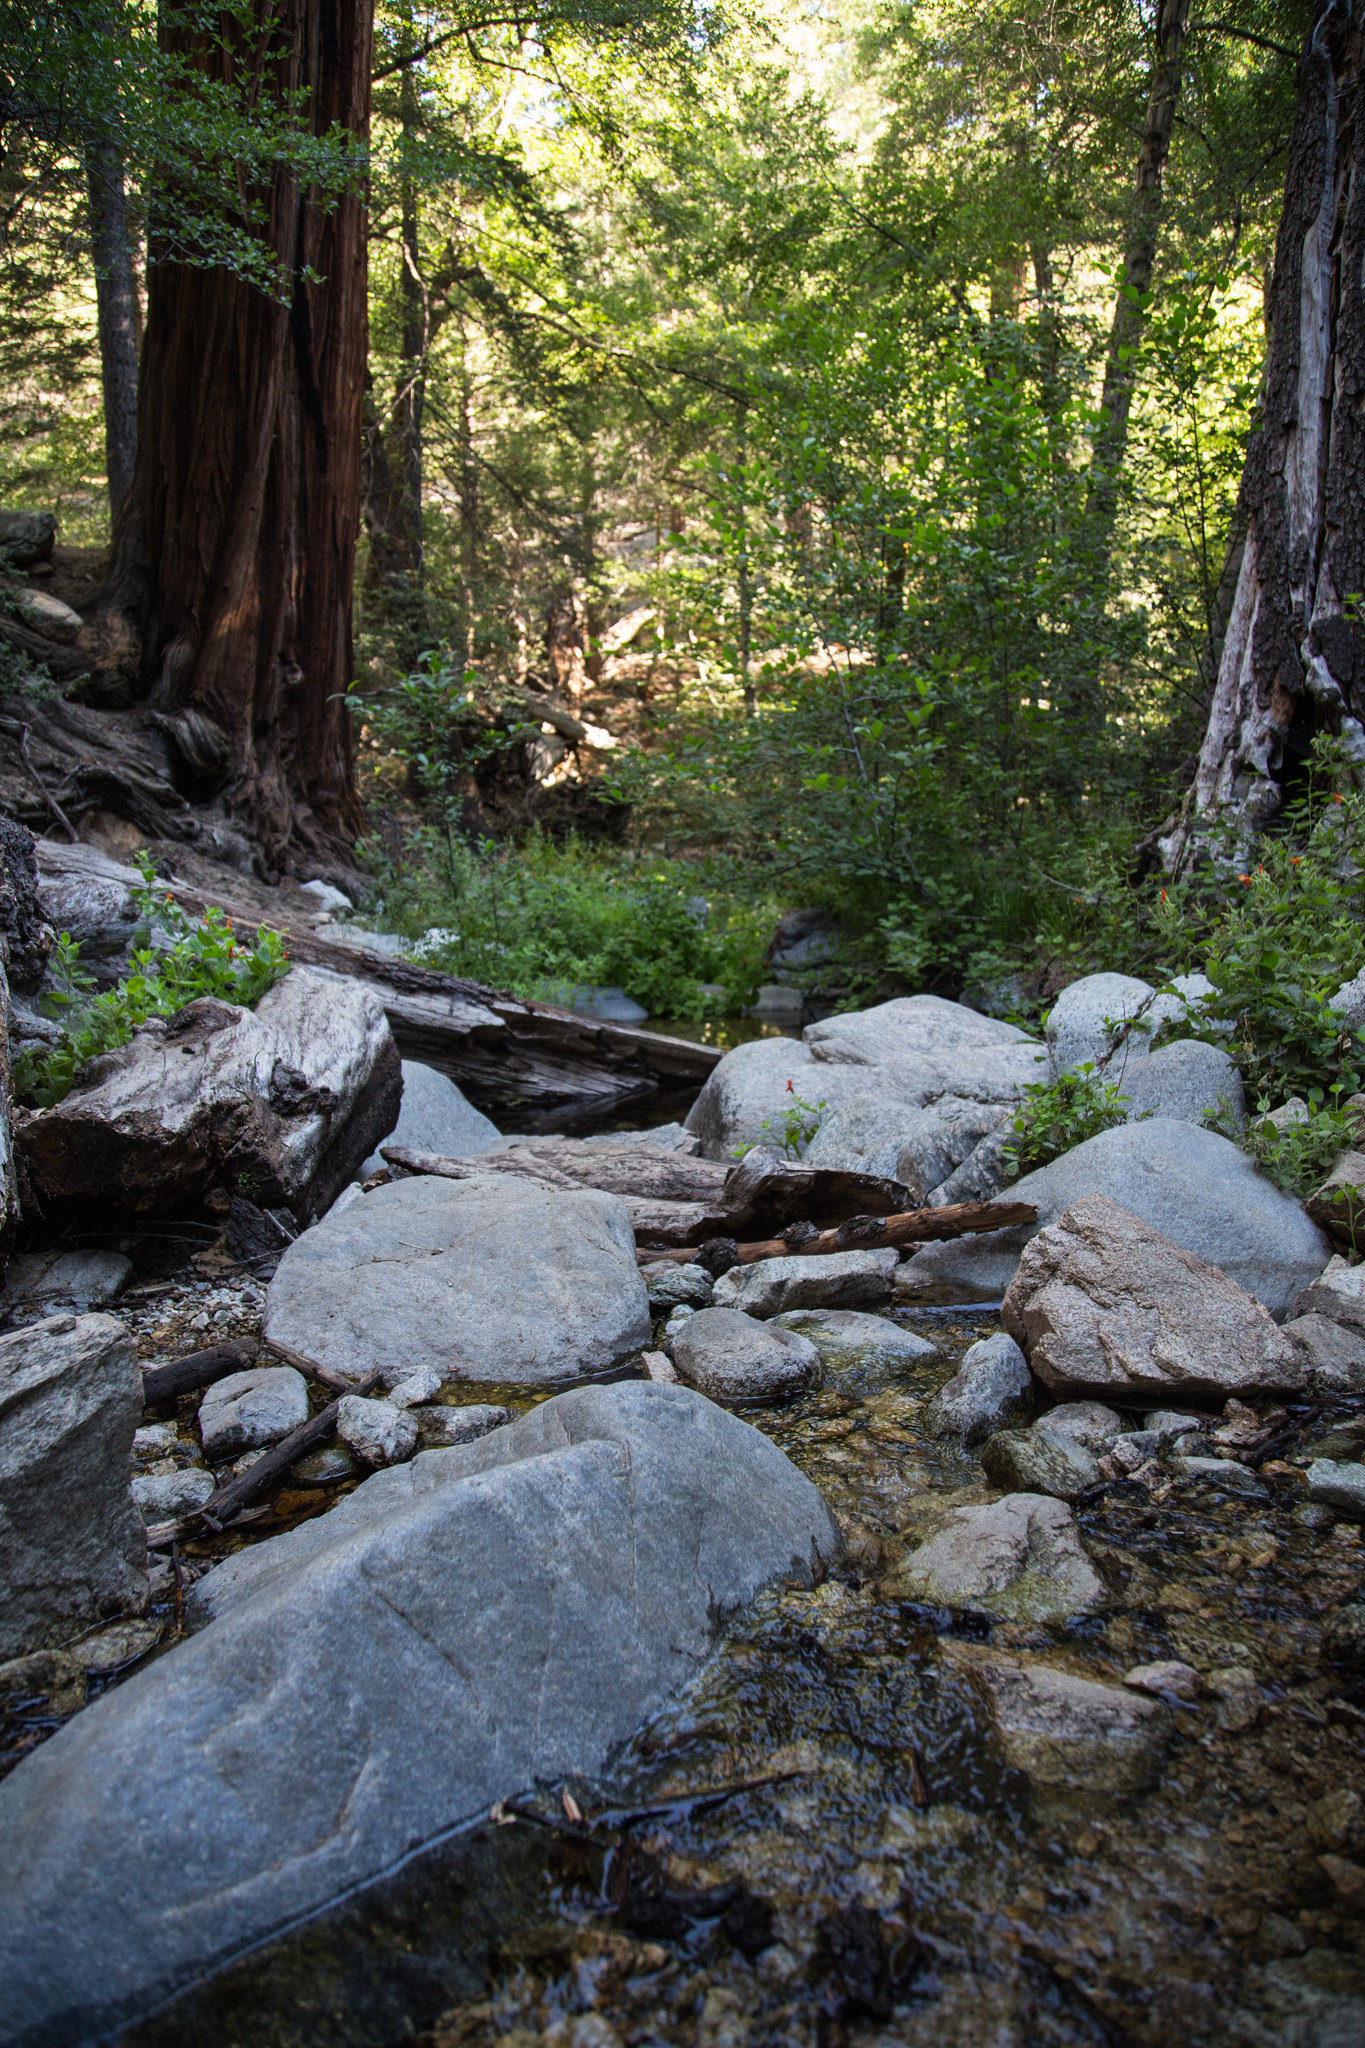 One of the two creek beds we crossed.